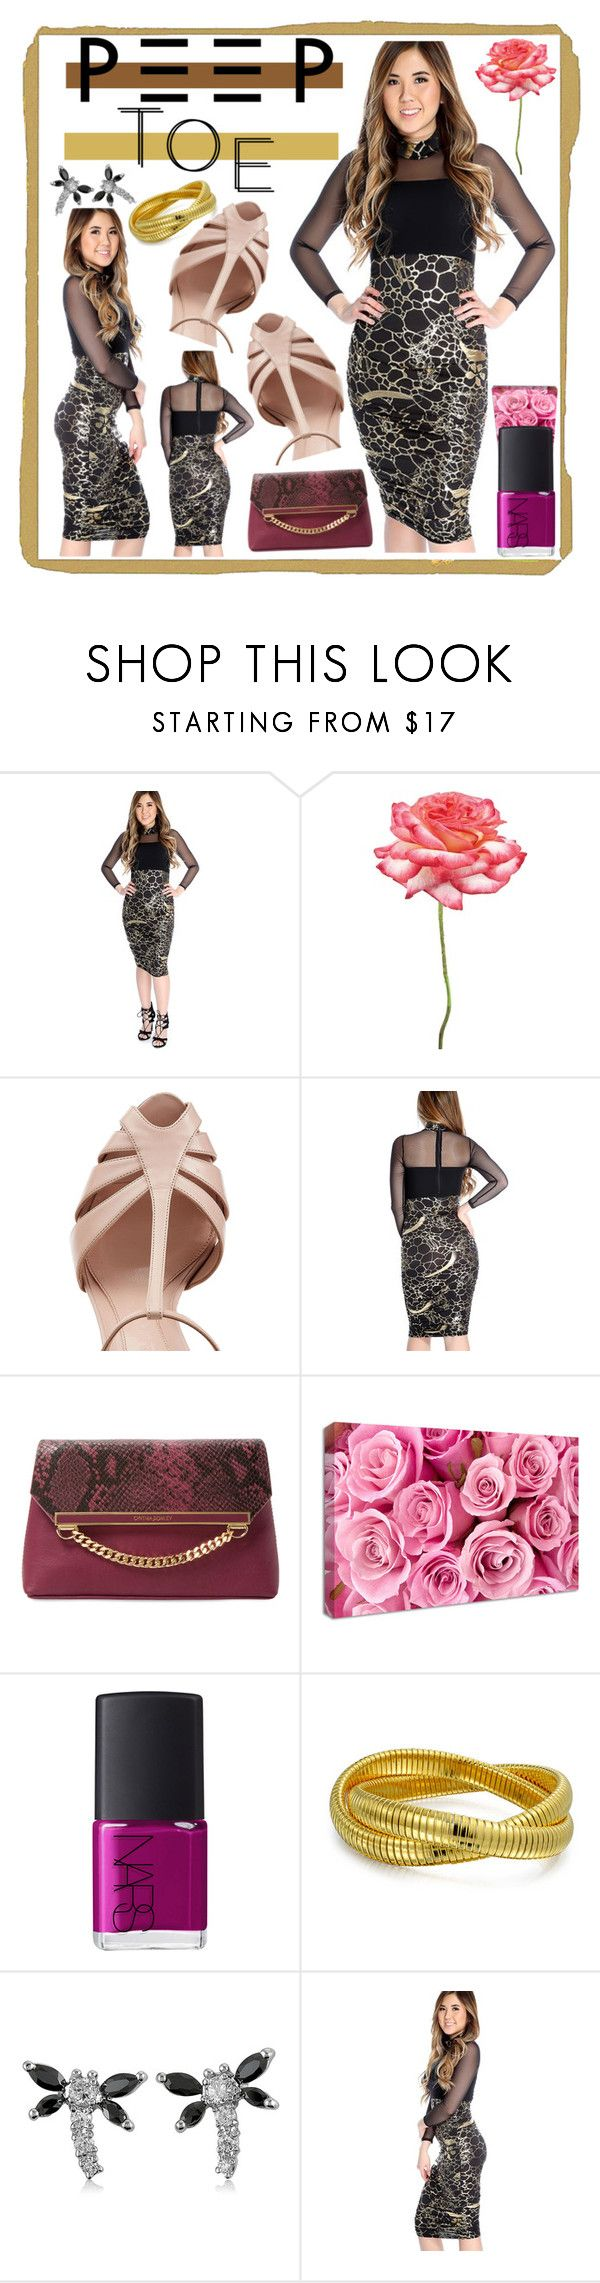 """""""Peep-Toe Pumps"""" by westcoastcharmed ❤ liked on Polyvore featuring Universal Lighting and Decor, Alexander McQueen, Cynthia Rowley, NuCasa, NARS Cosmetics, Bling Jewelry, BERRICLE and peeptoe"""